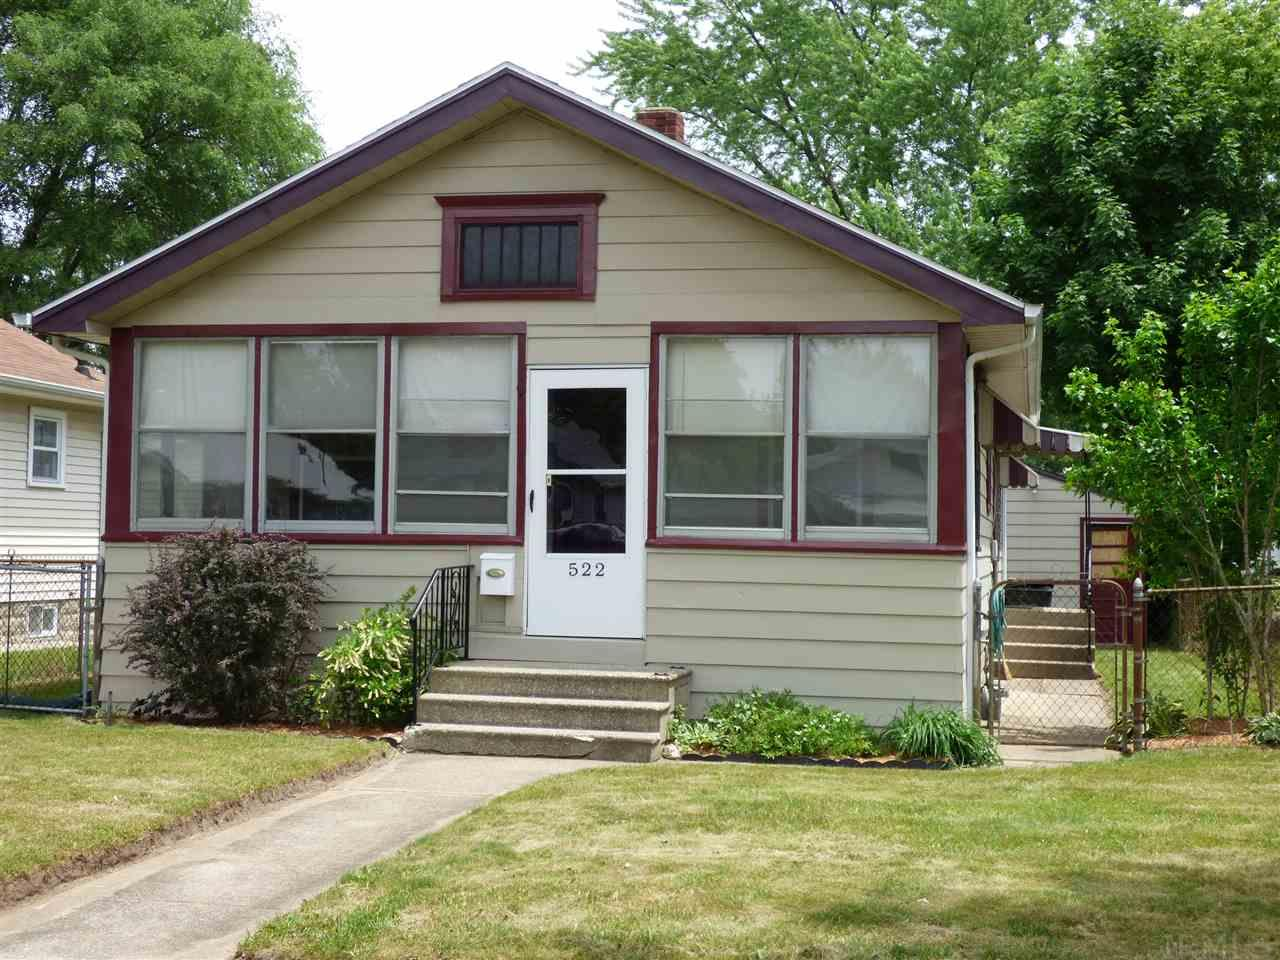 522 S 33 Rd South Bend, IN 46615